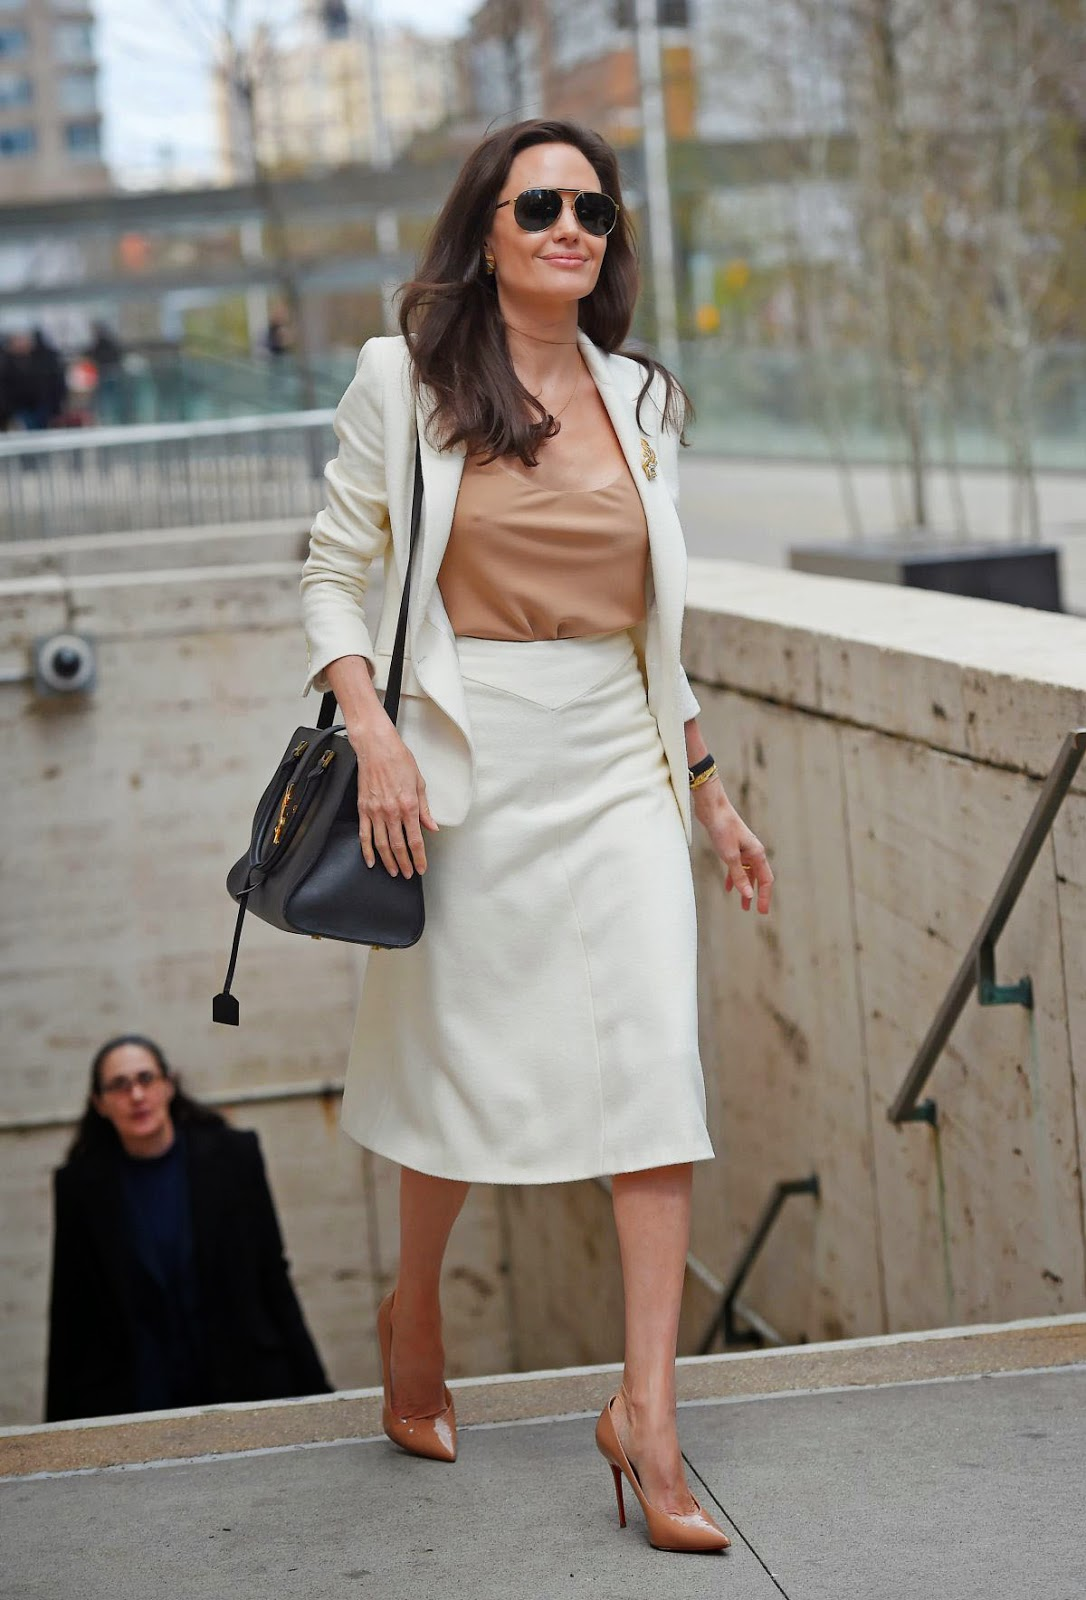 Angelina Jolie leaving Lincoln Center in NY after a meeting